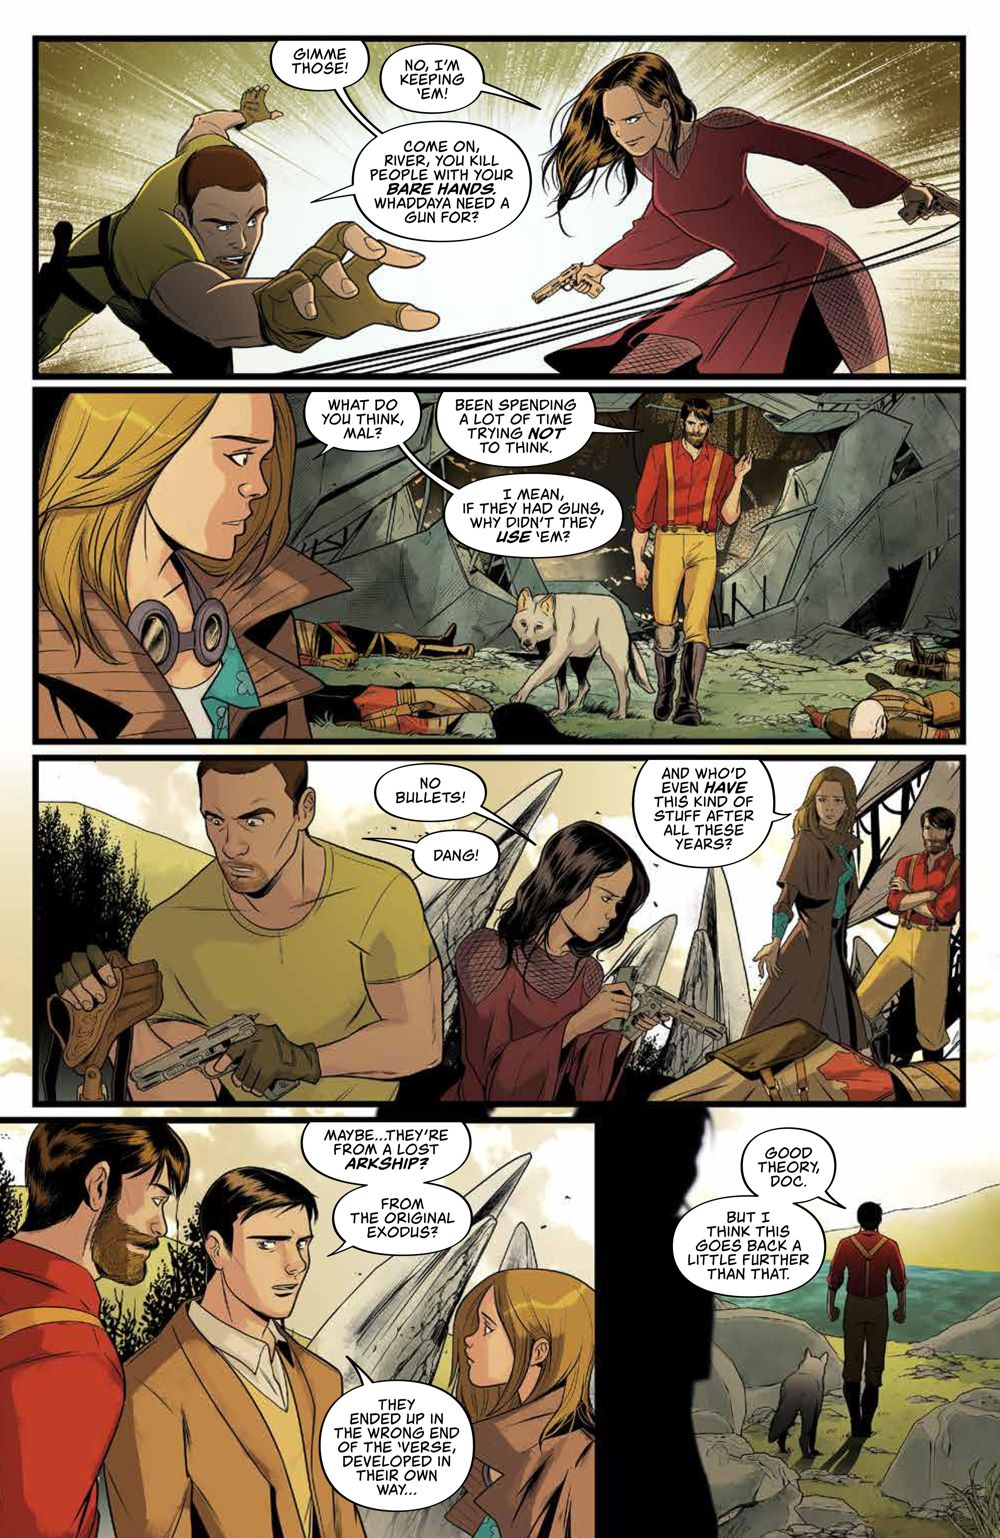 Firefly_029_PRESS_7 ComicList Previews: FIREFLY #29